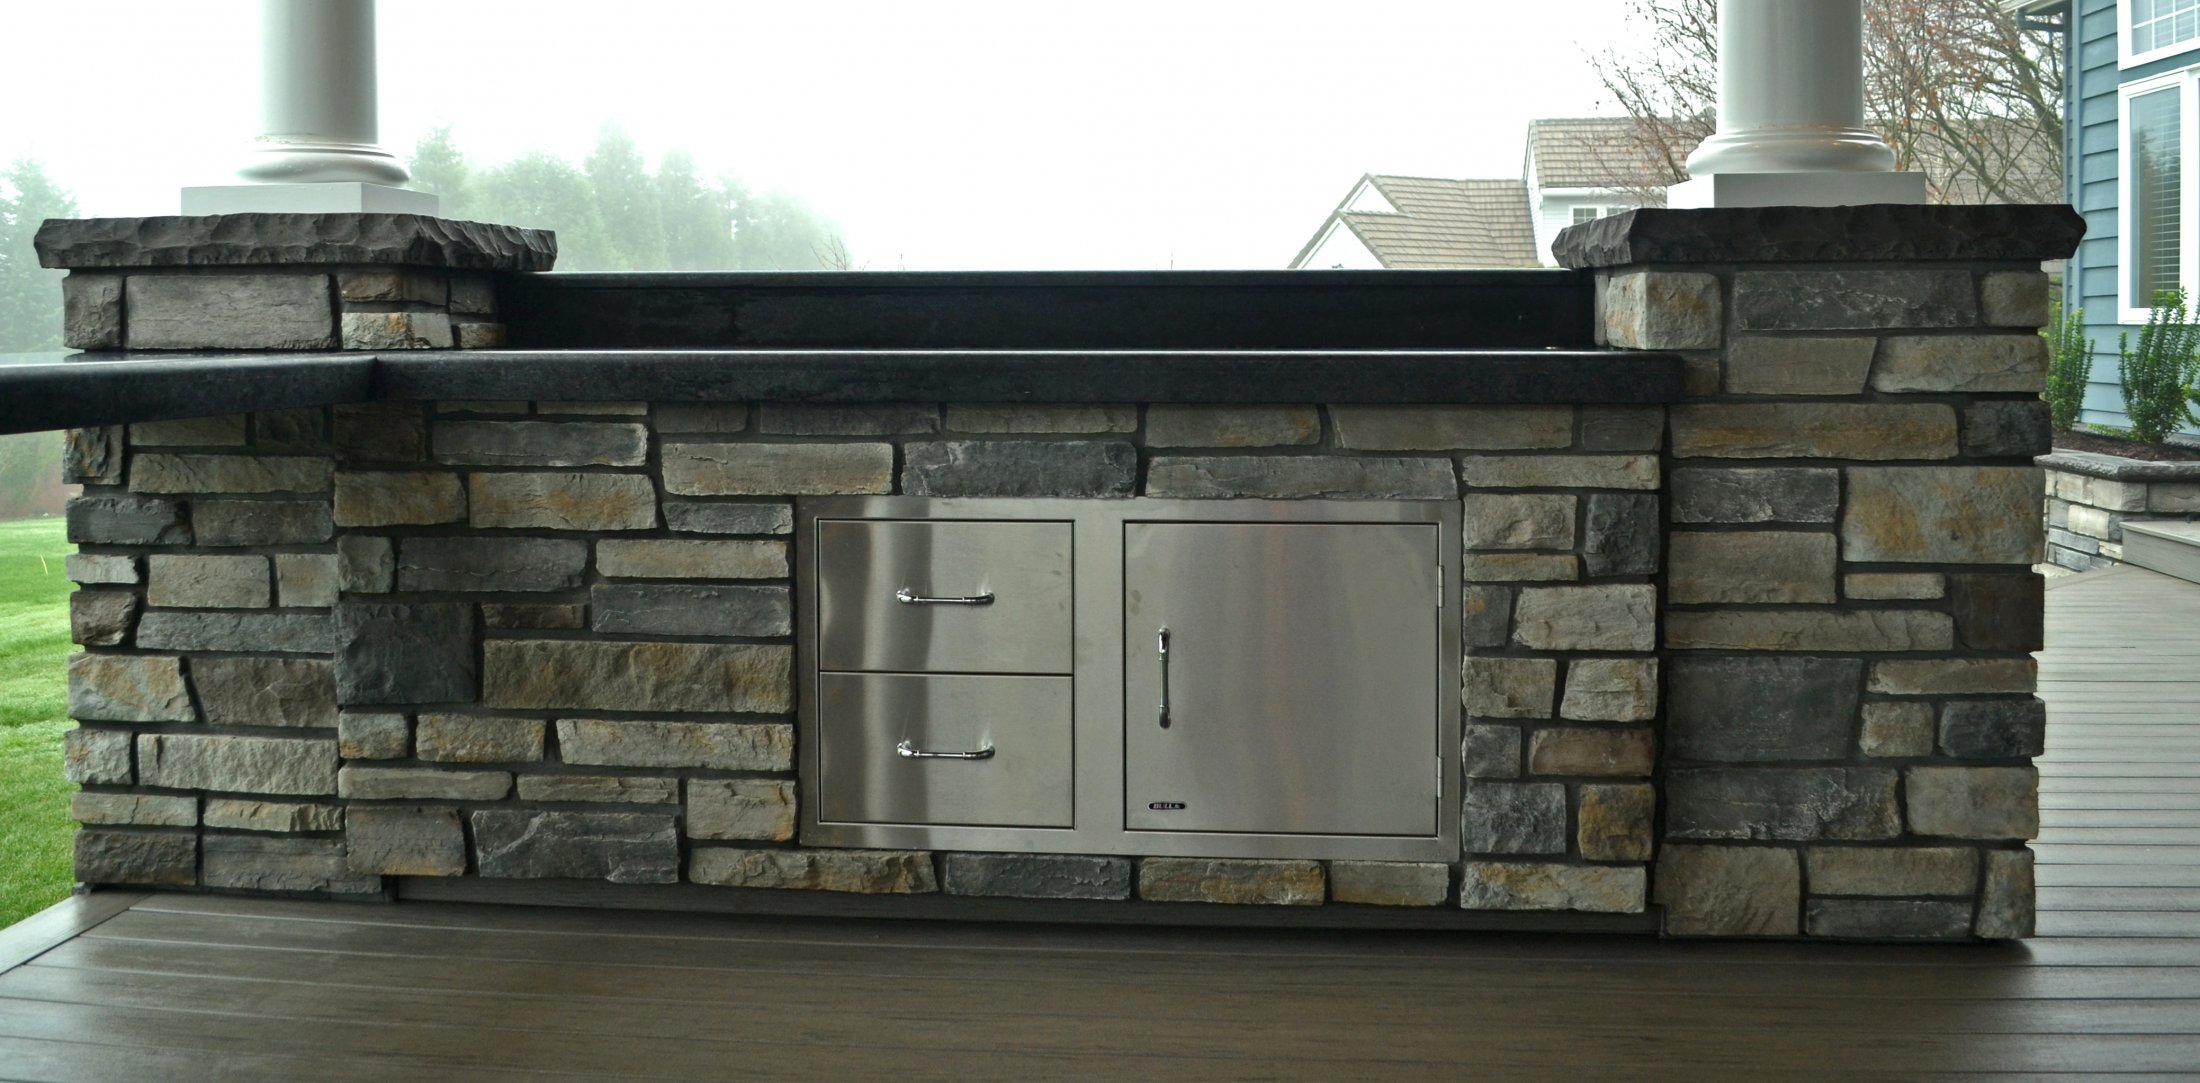 Other Side of Outdoor Kitchen,Concrete Slab Countertops, SS Doors & Drawers